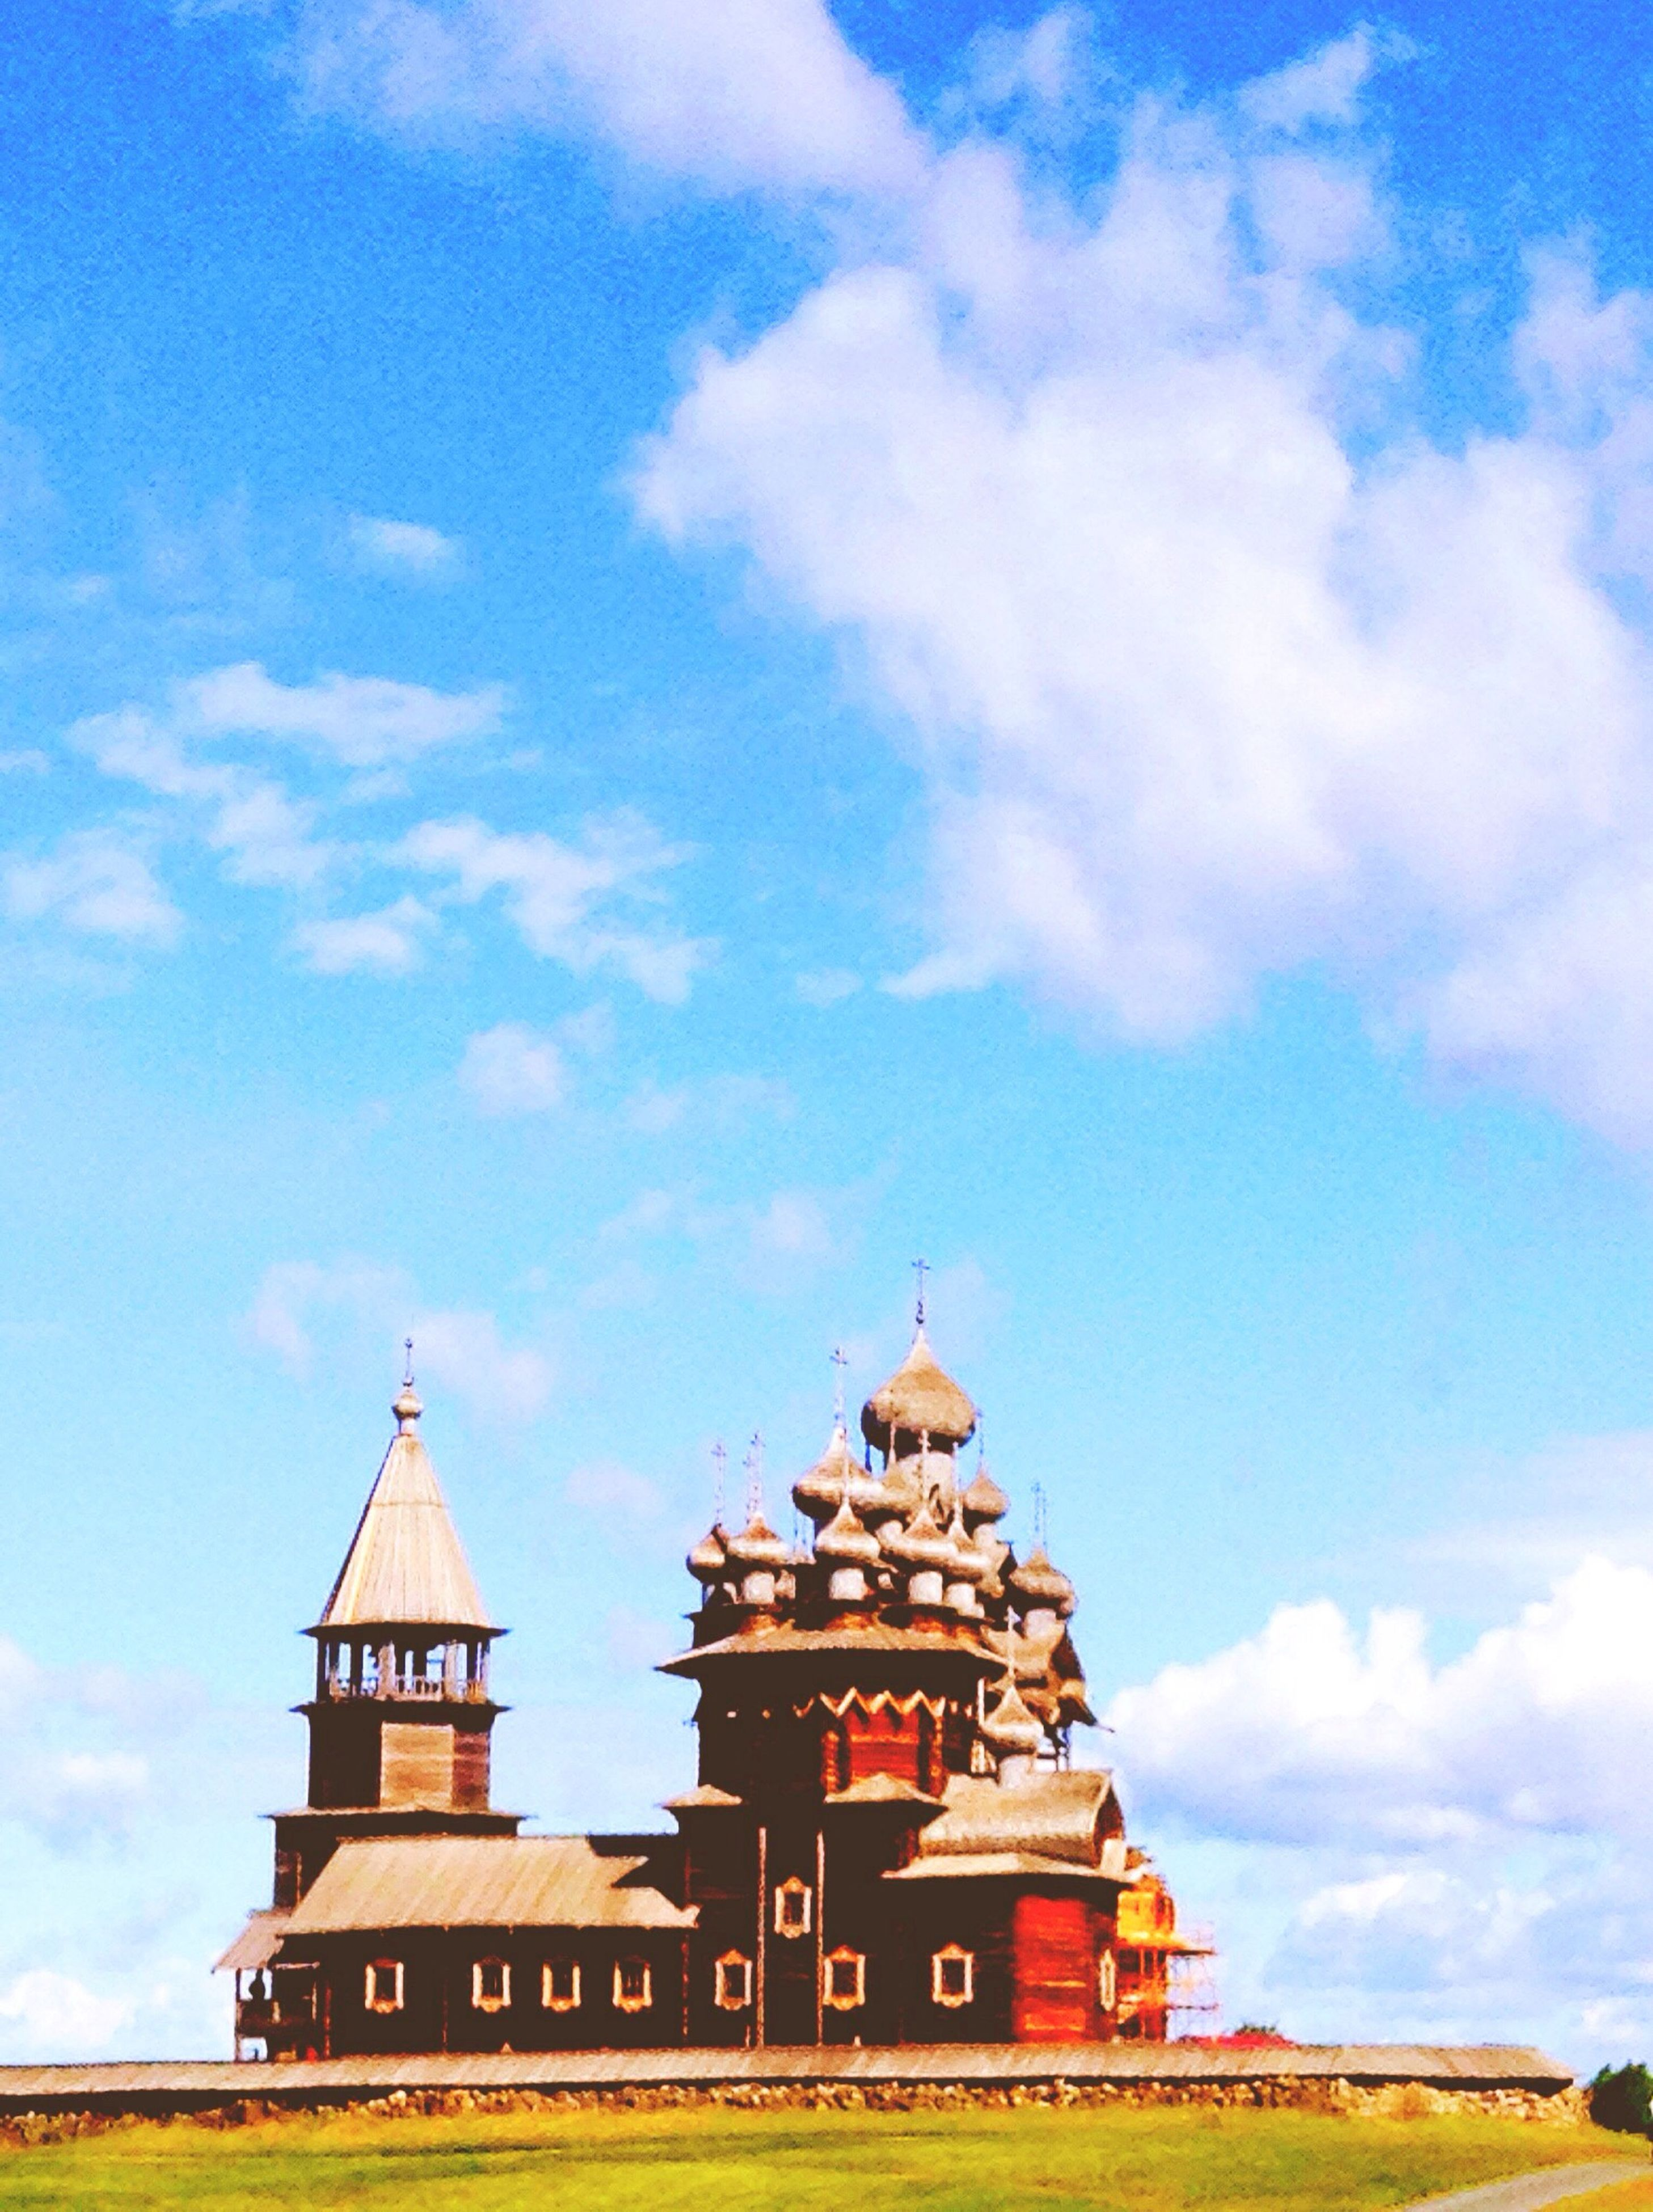 building exterior, architecture, built structure, place of worship, religion, sky, spirituality, church, cloud - sky, low angle view, cloud, blue, cathedral, history, outdoors, cloudy, day, temple - building